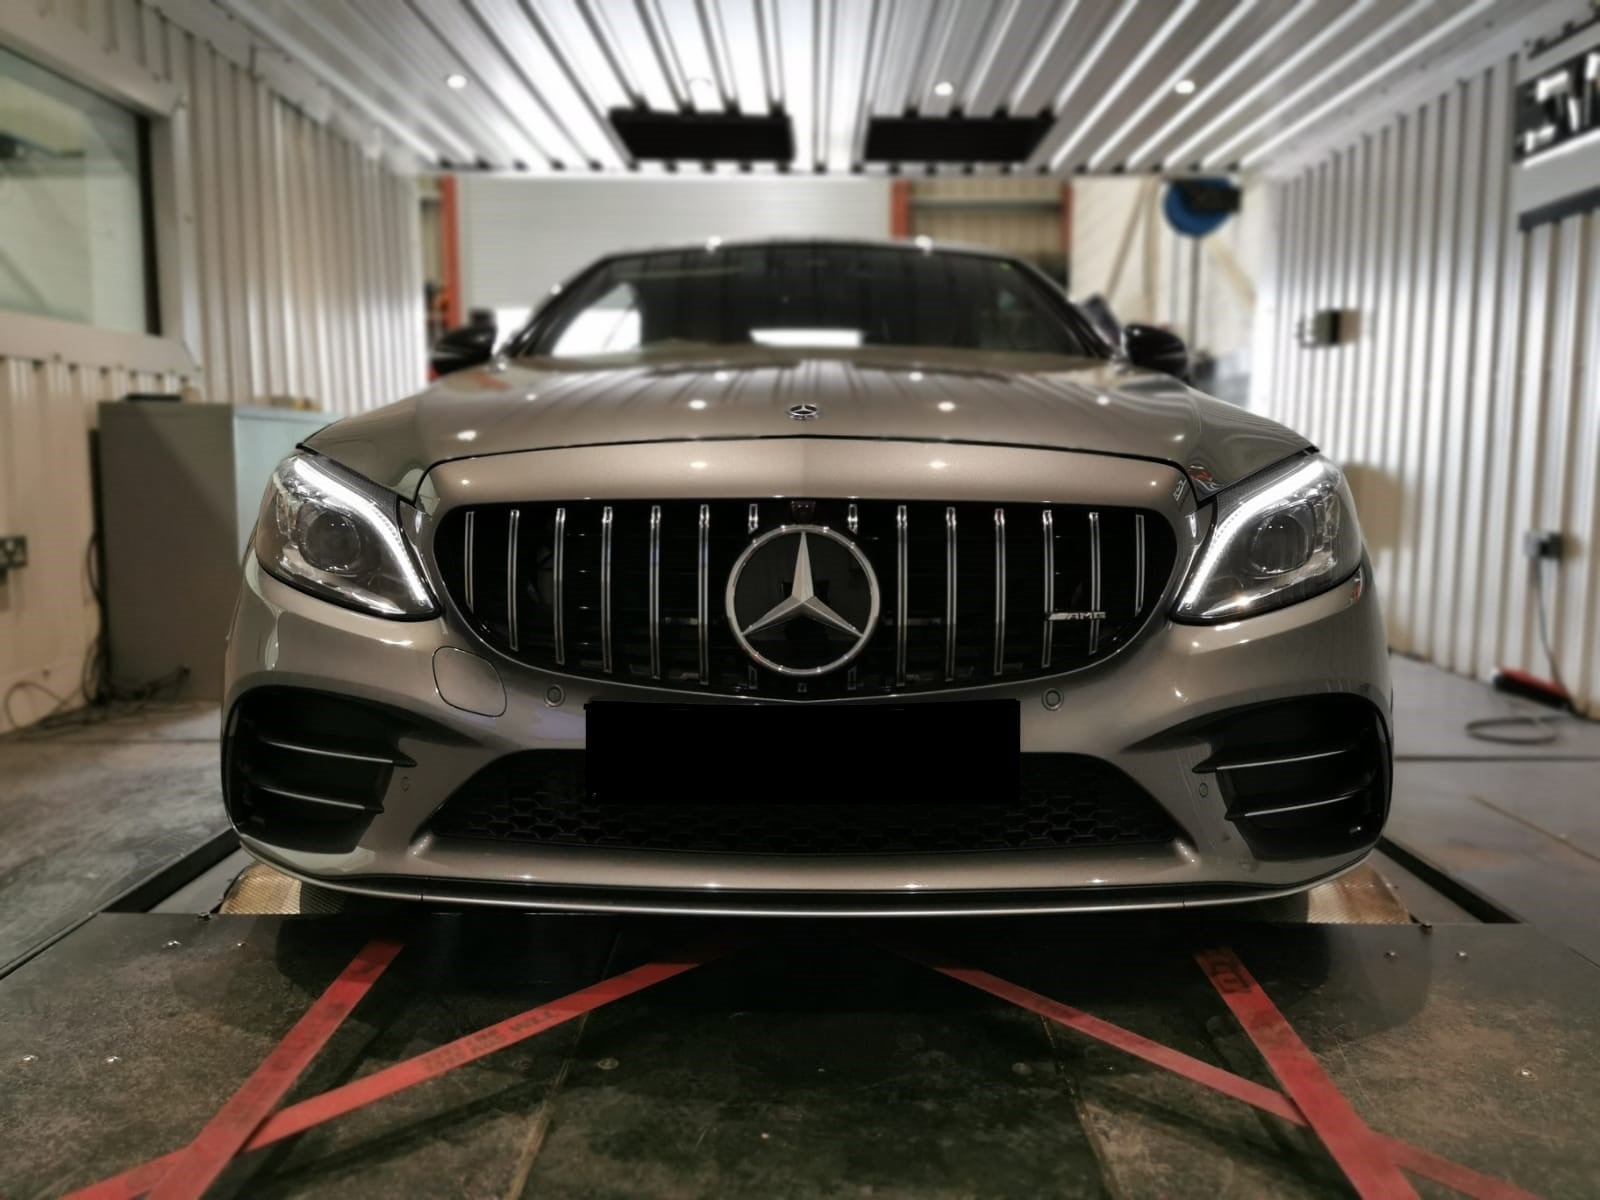 Mercedes C43 AMG for stage 1 & dyno